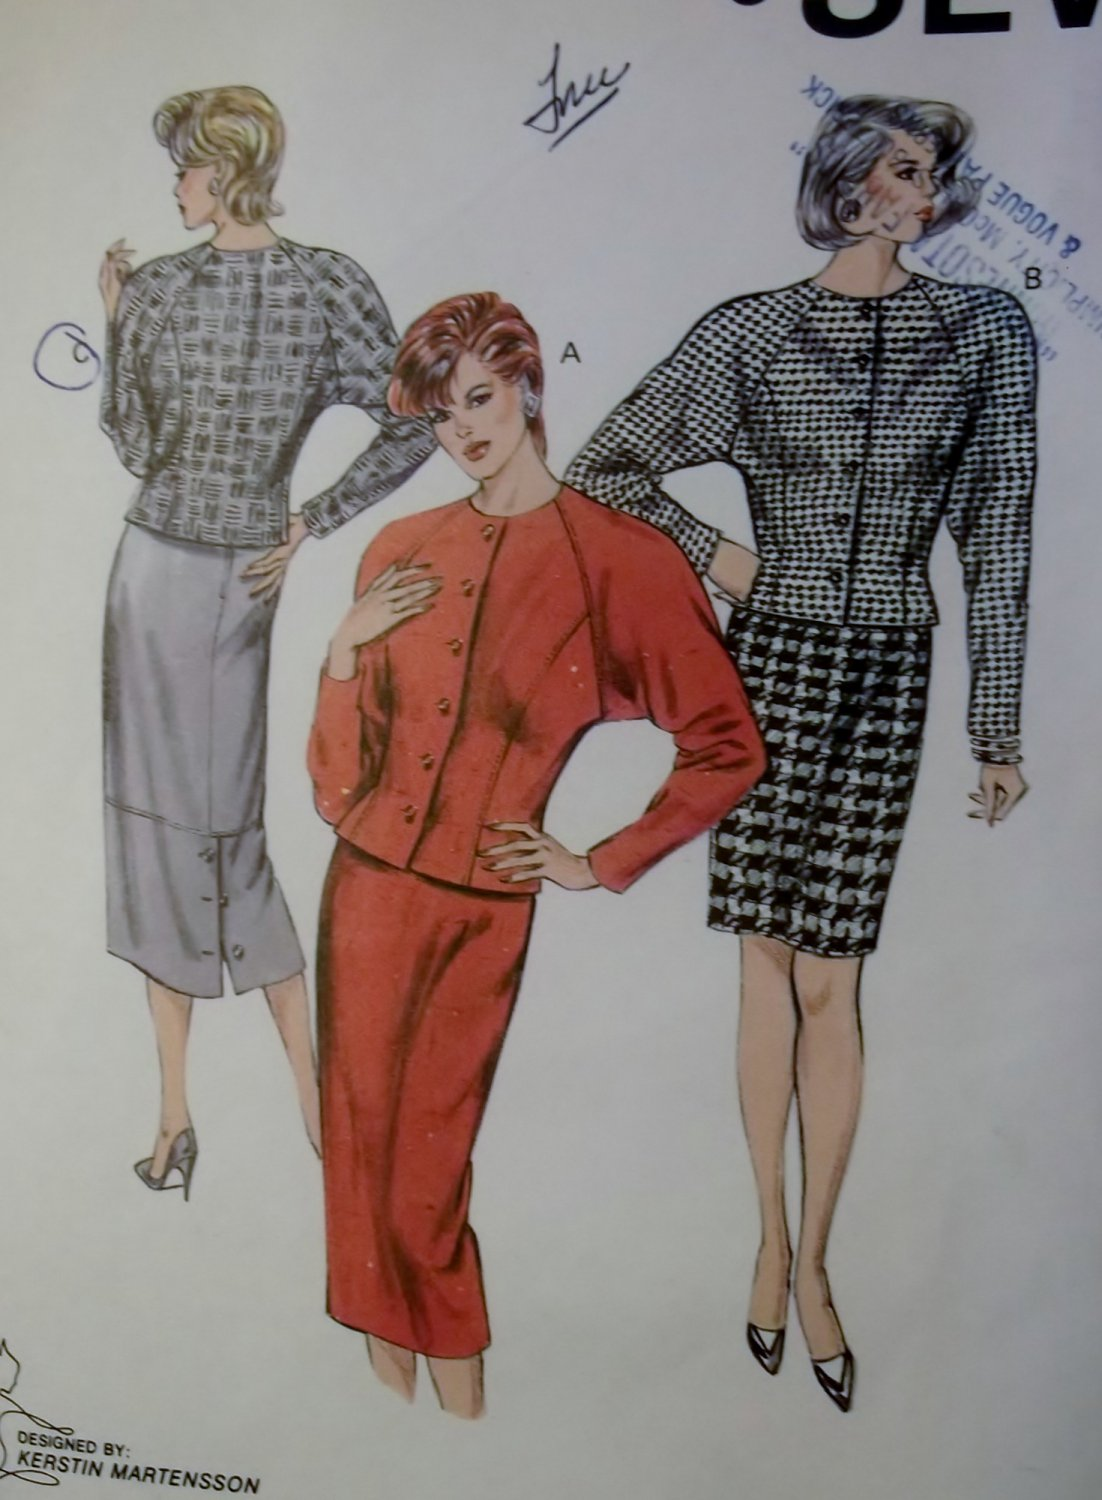 Kwik Sew Pattern 1536, Misses Skirt and Top, Size 6, 8, 10, 12